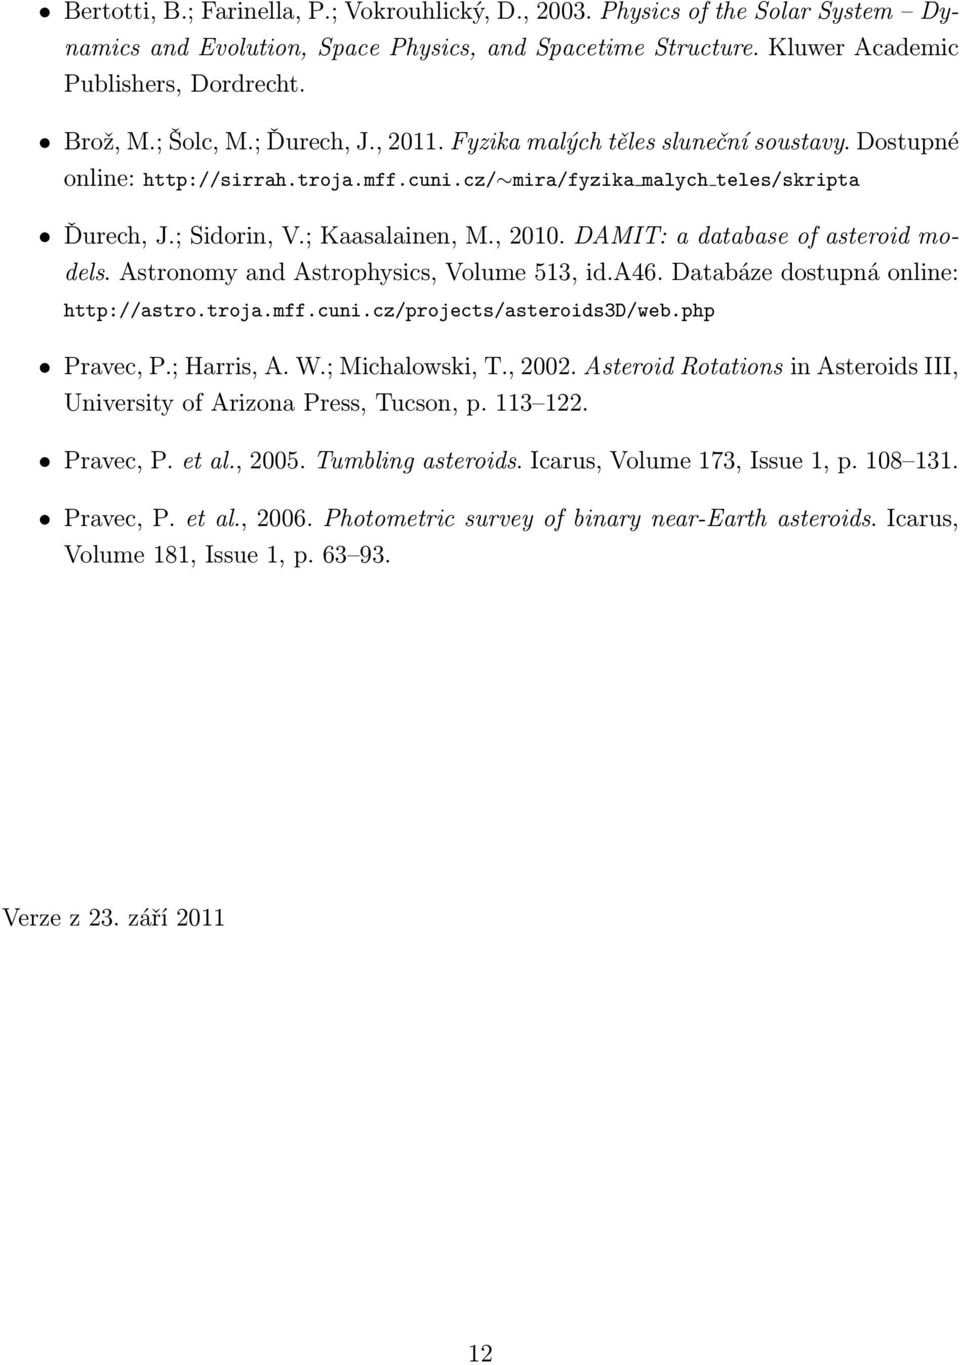 DAMIT: a database of asteroid models. Astronomy and Astrophysics, Volume 513, id.a46. Databáze dostupná online: http://astro.troja.mff.cuni.cz/projects/asteroids3d/web.php Pravec, P.; Harris, A. W.